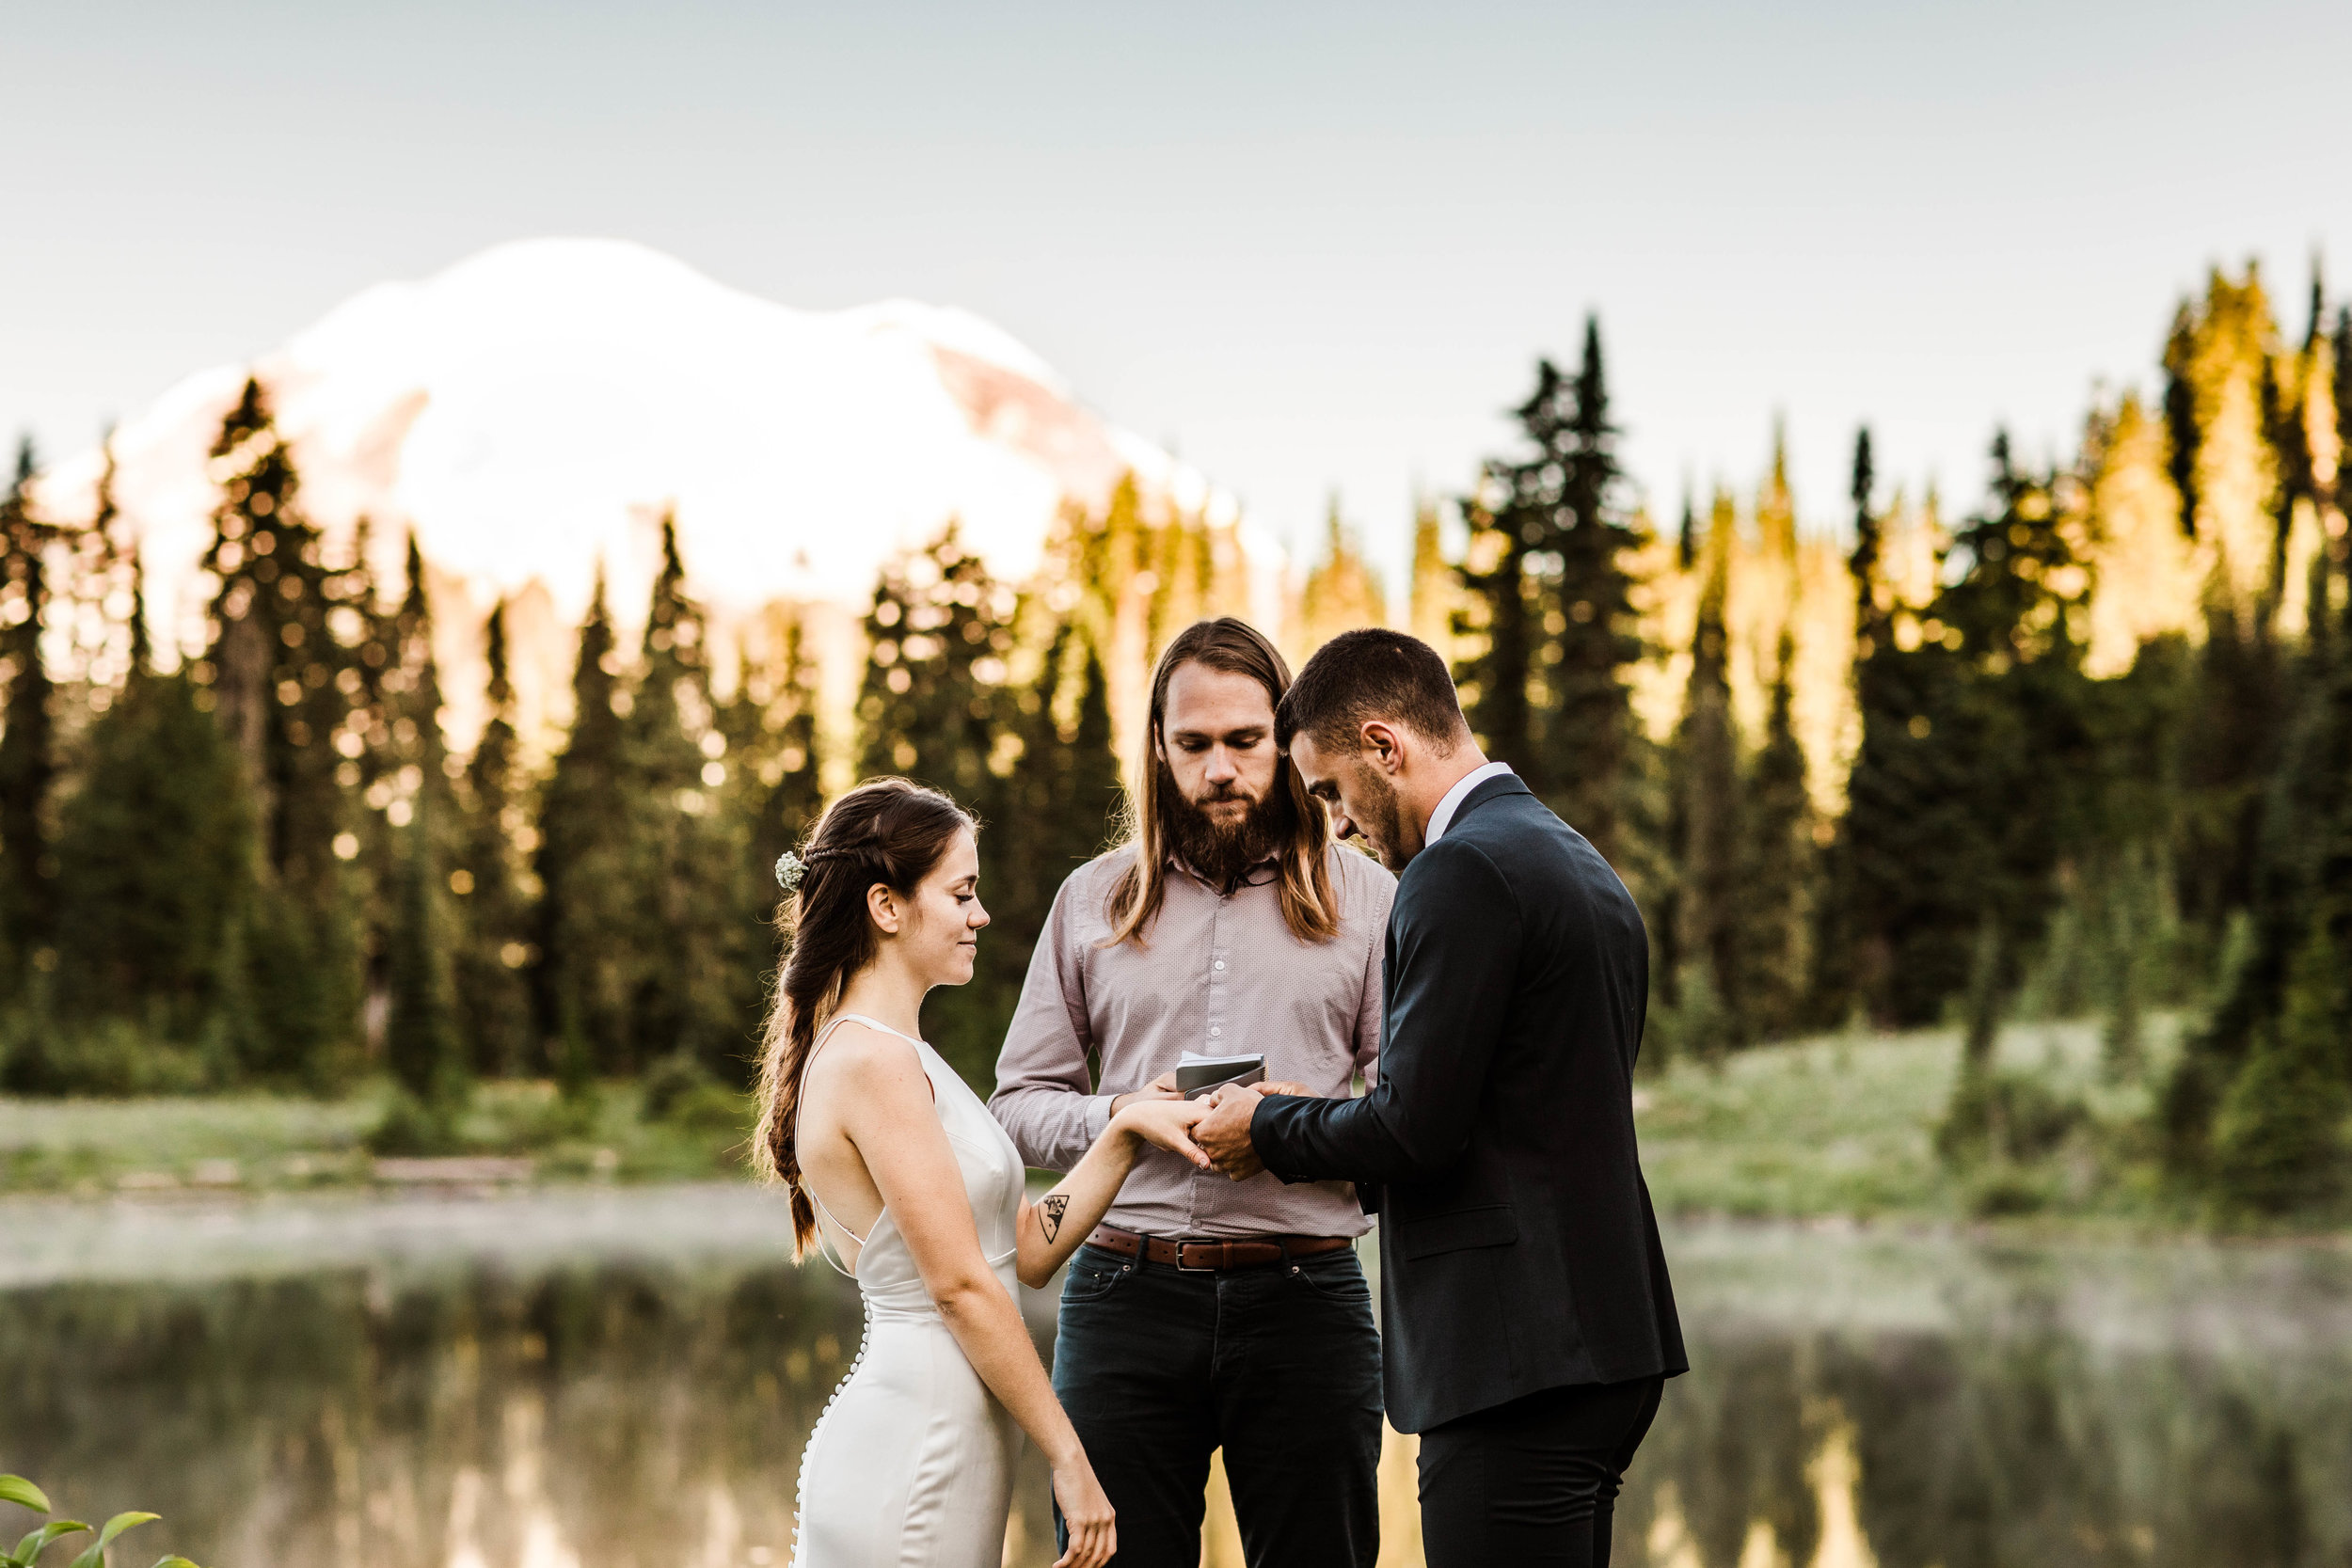 ring exchange during elopement ceremony in Mount Rainier | national park elopement photographers in Washington state